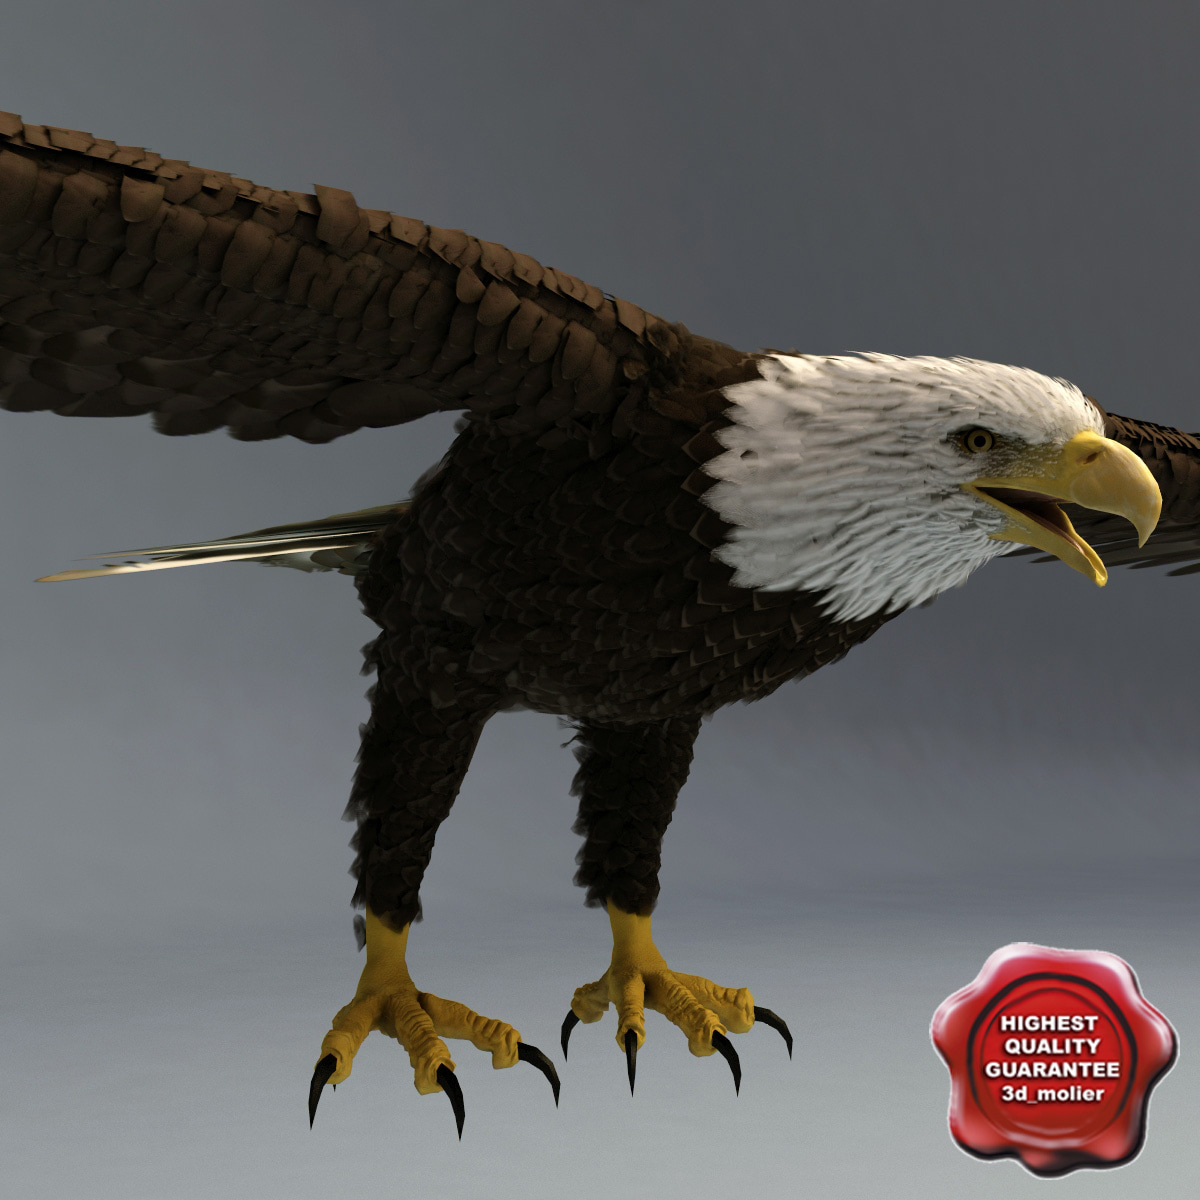 Bald_Eagle_Static_00.jpg